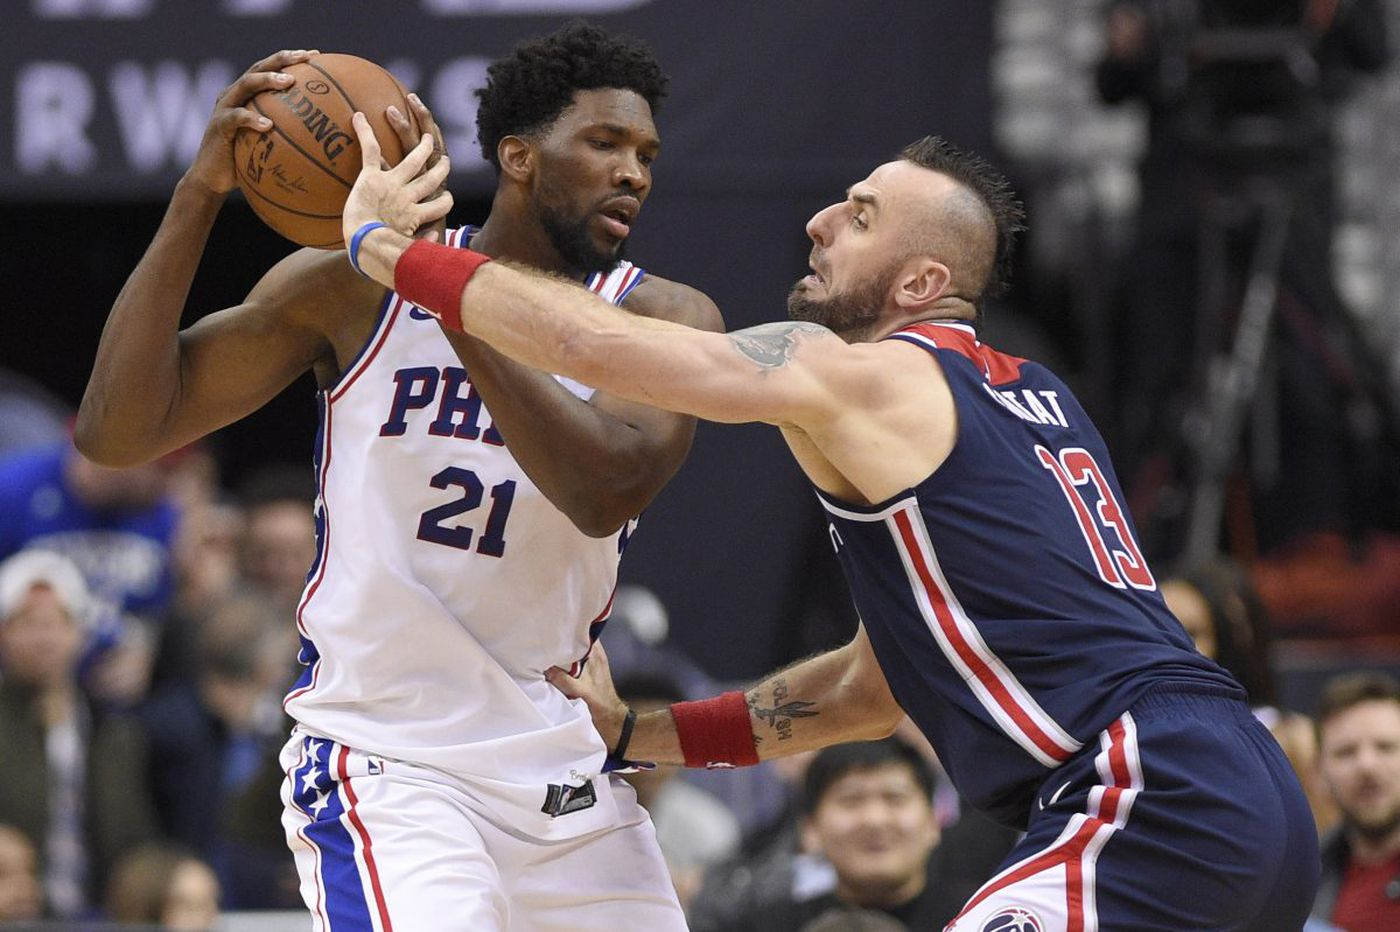 Sixers' playoff positioning battle in the Eastern Conference standings about to face critical juncture